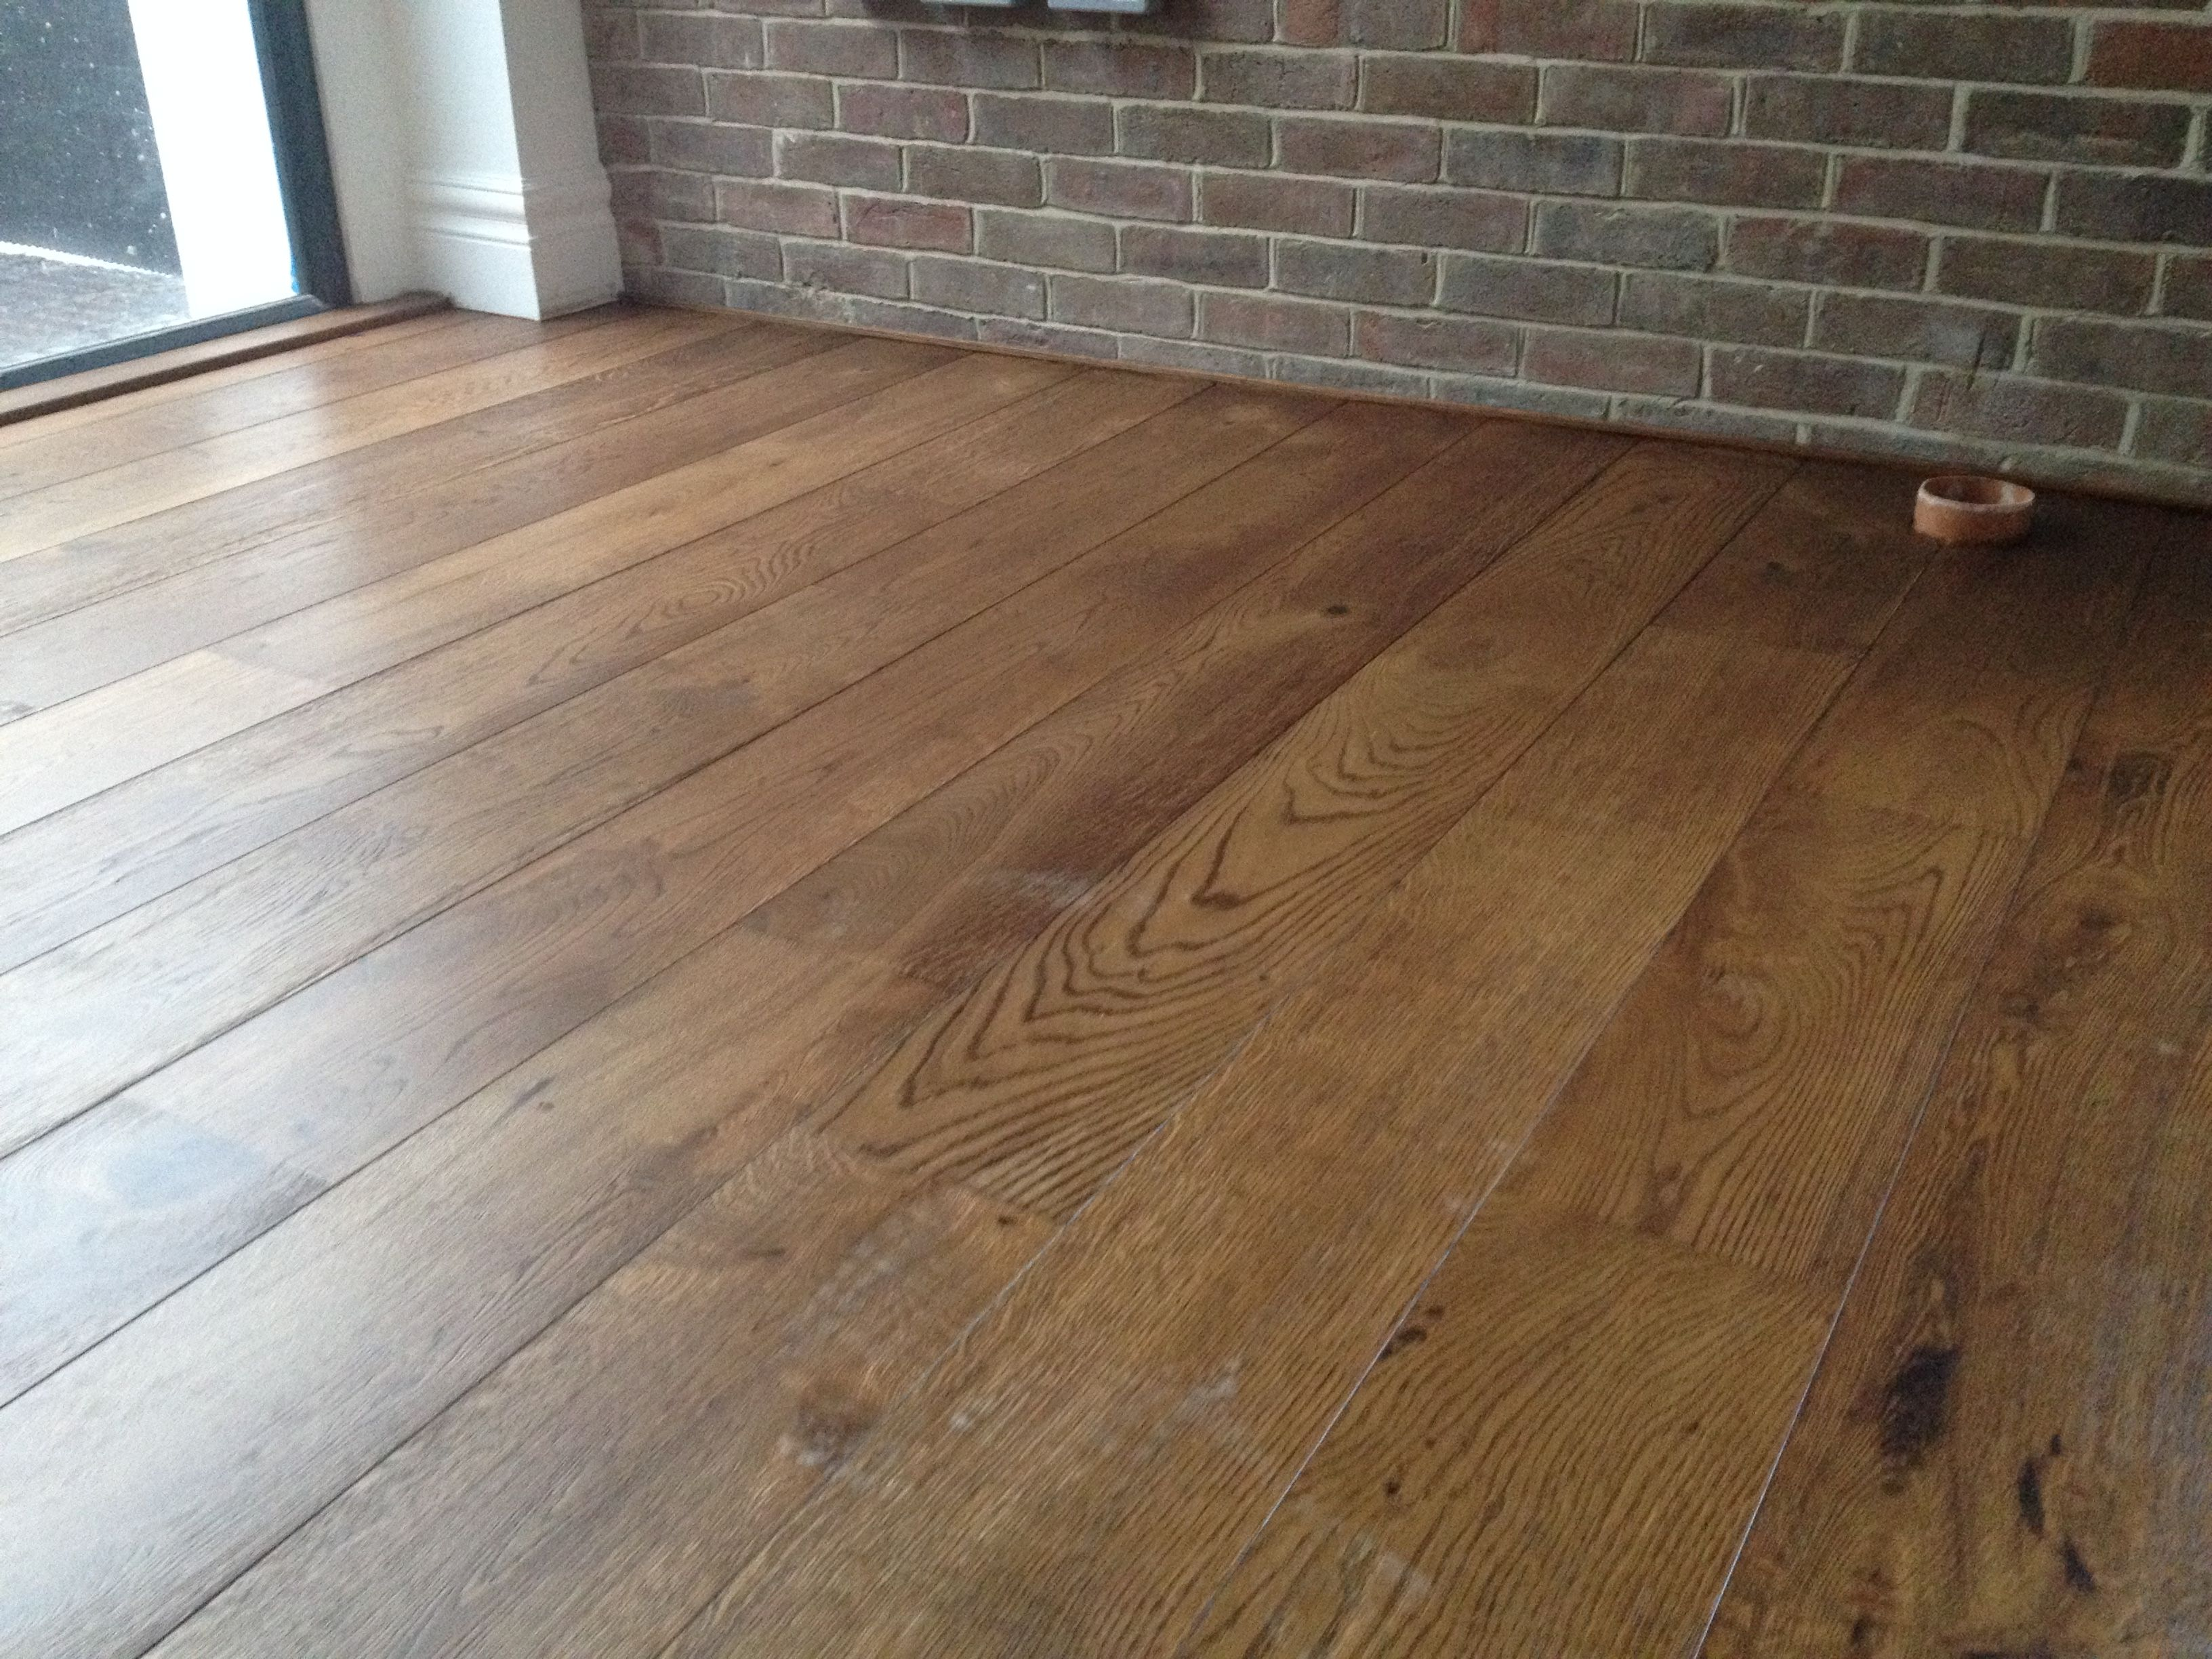 floors kahrs more to wood save enlarge at flooring oak click artisan engineered floor rye